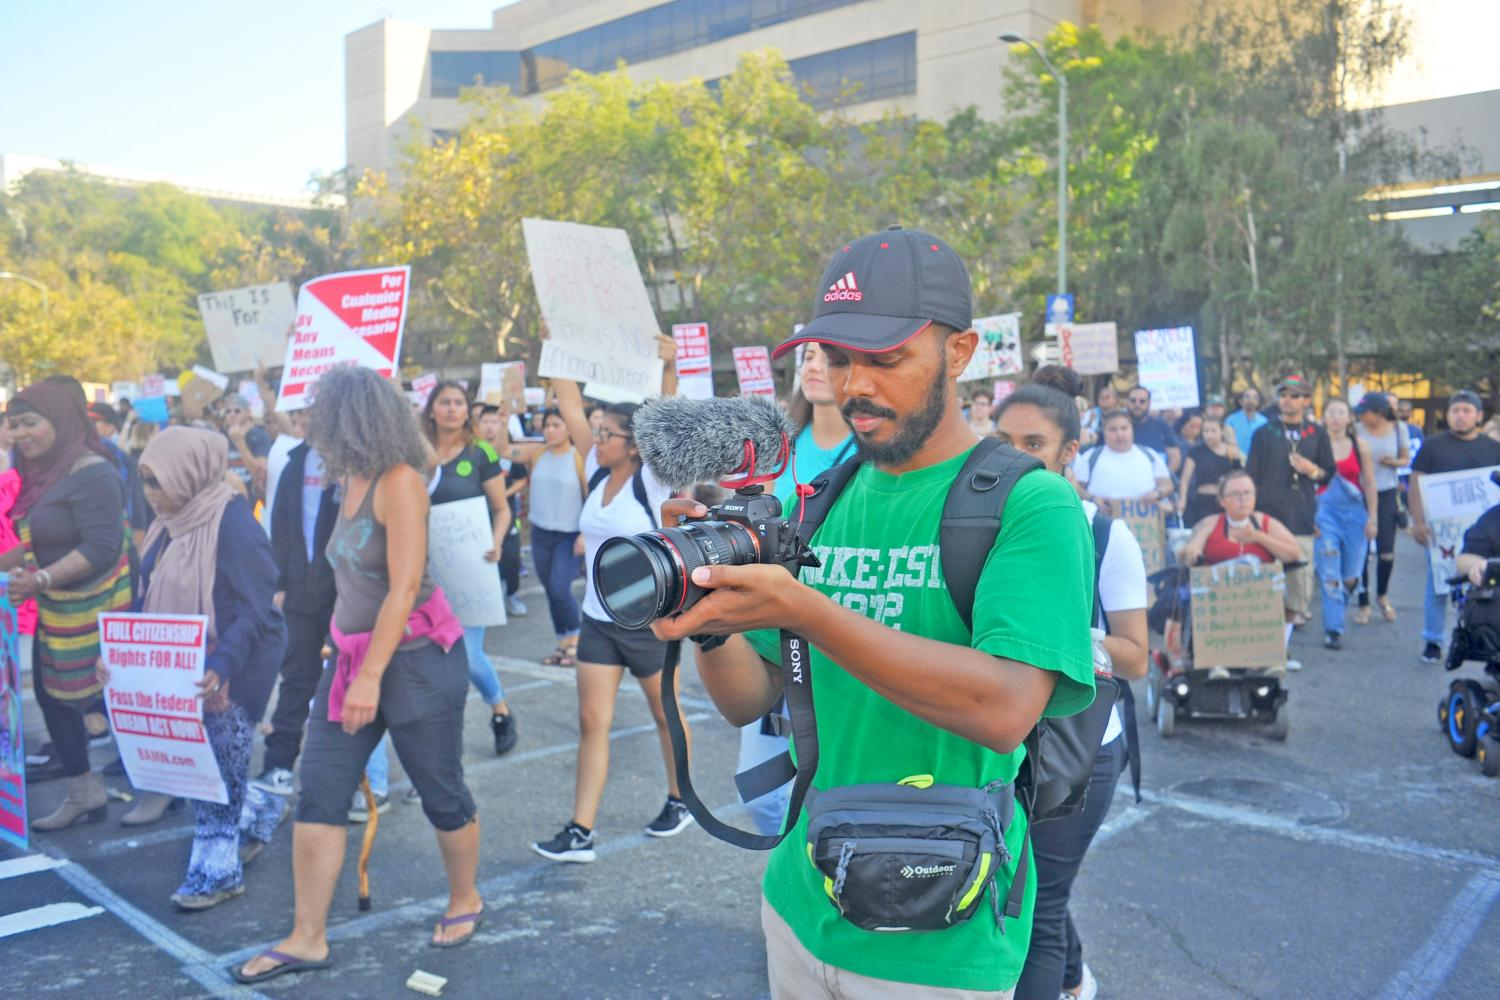 Richmond resident Taye Taye records a video during the Defend Daca rally and march to stand in solidarity with Deferred Action for Childhood Arrivals recipients in Oakland on Saturday. Taye gathers content for a political documentary following the election of Donald Trump.